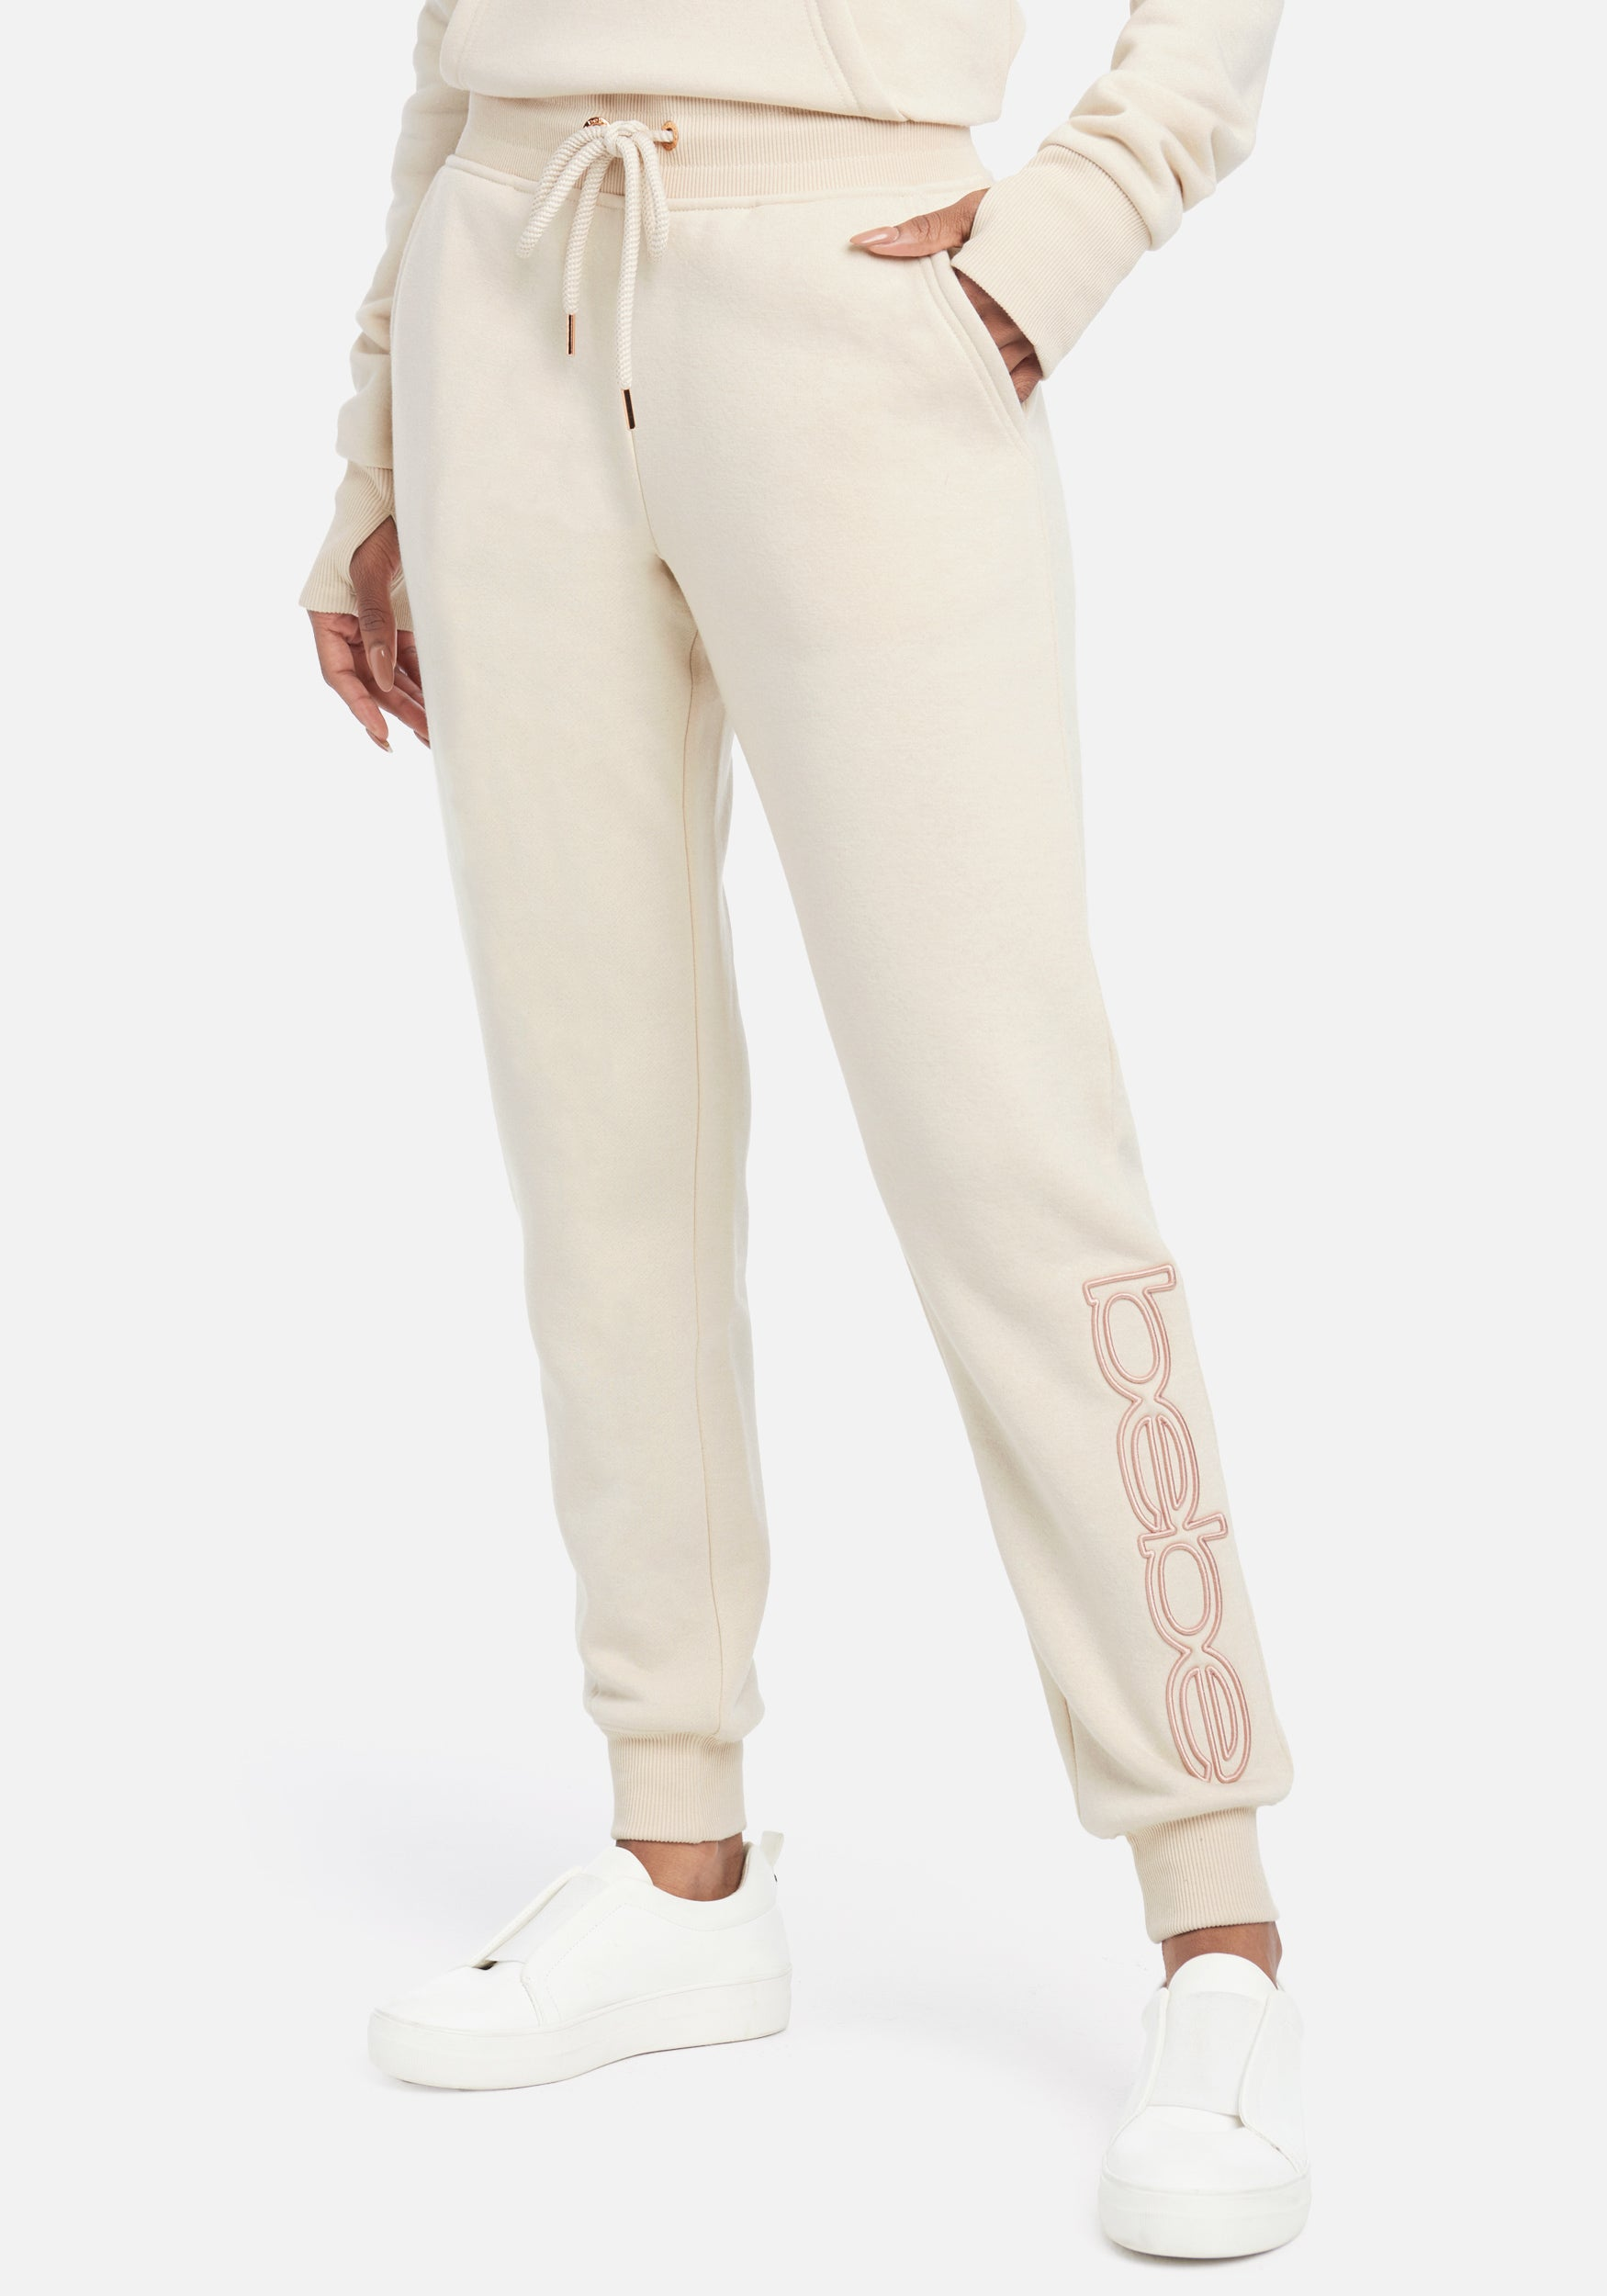 Women's Bebe Sport Embroidered Logo Jogger Pant, Size Small in Ivory Cotton